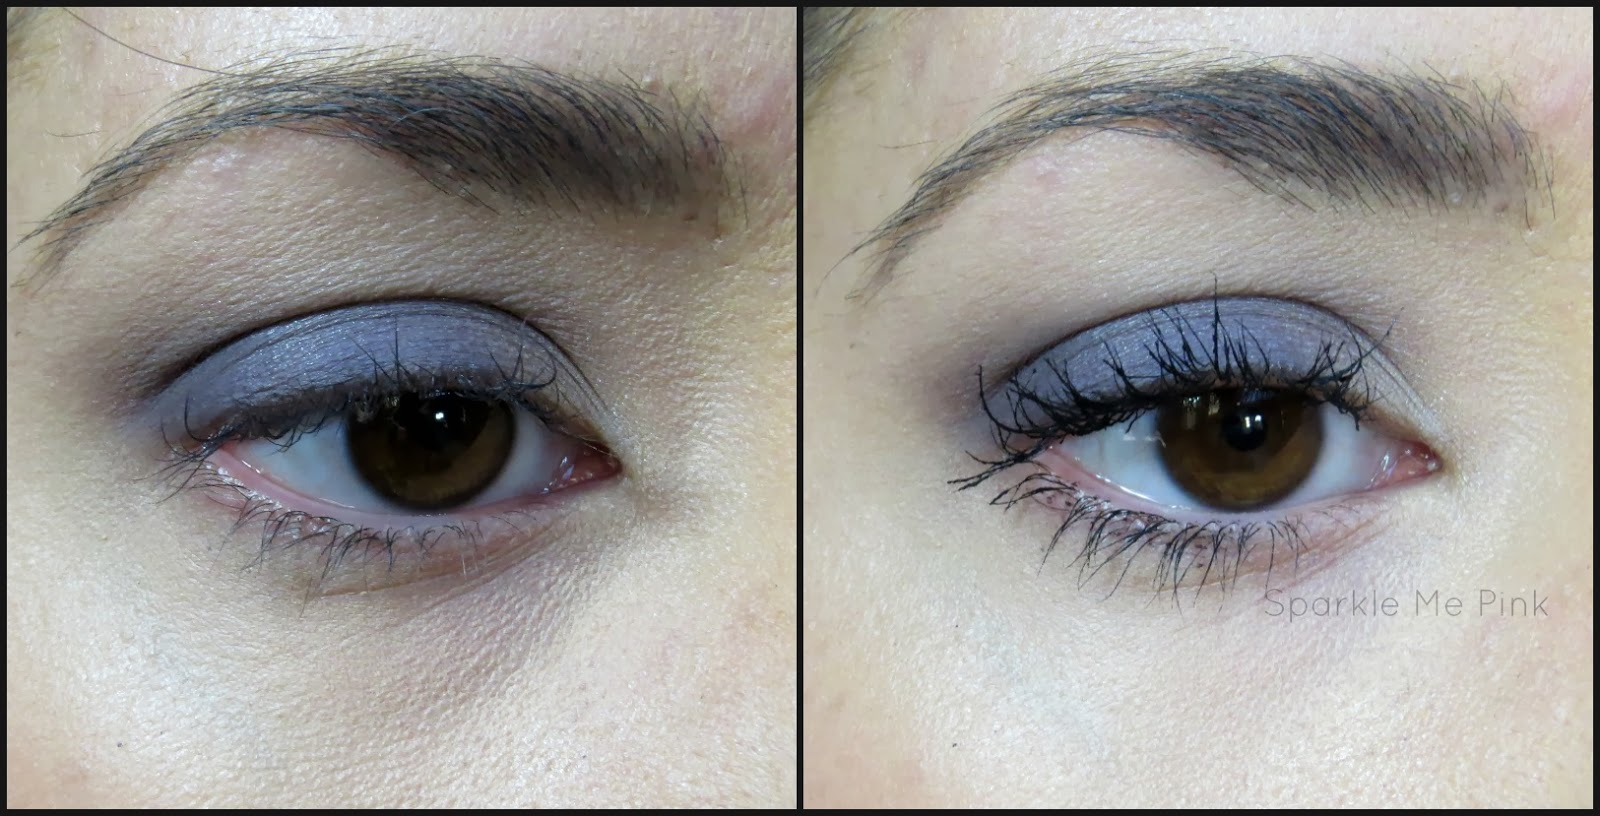 38bf8bfd2a9 Sparkle Me Pink: Rimmel Scandaleyes Retro Glam Mascara | Demo ...